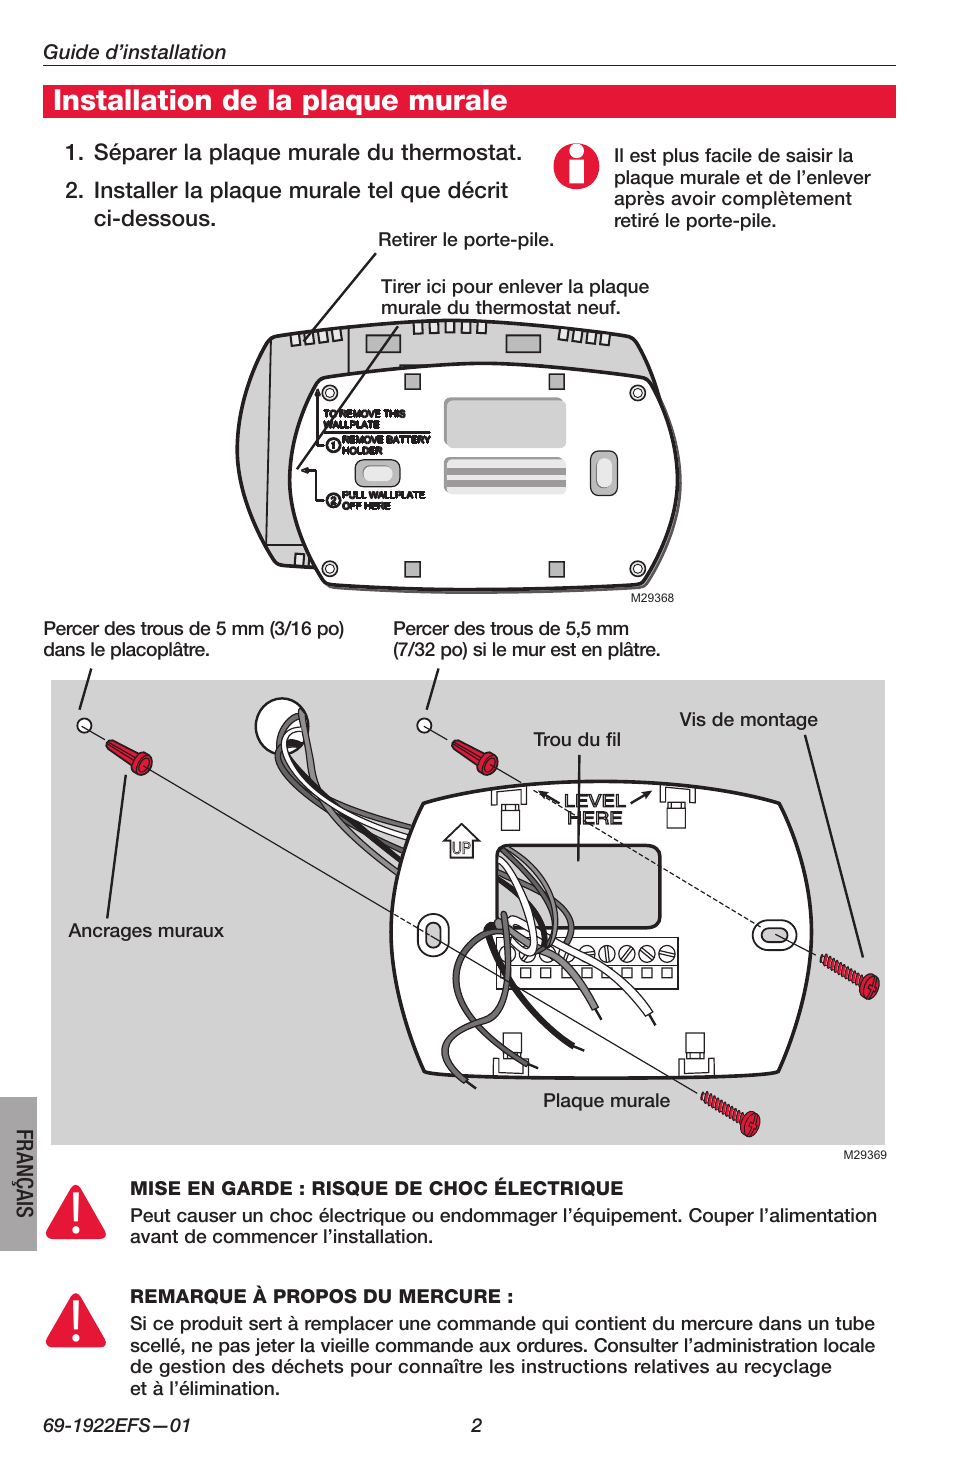 Honeywell Th5000 Wiring Diagram Start Building A Th6000 Thermostat Wire Installation De La Plaque Murale Focuspro Series Rh Manualsdir Com